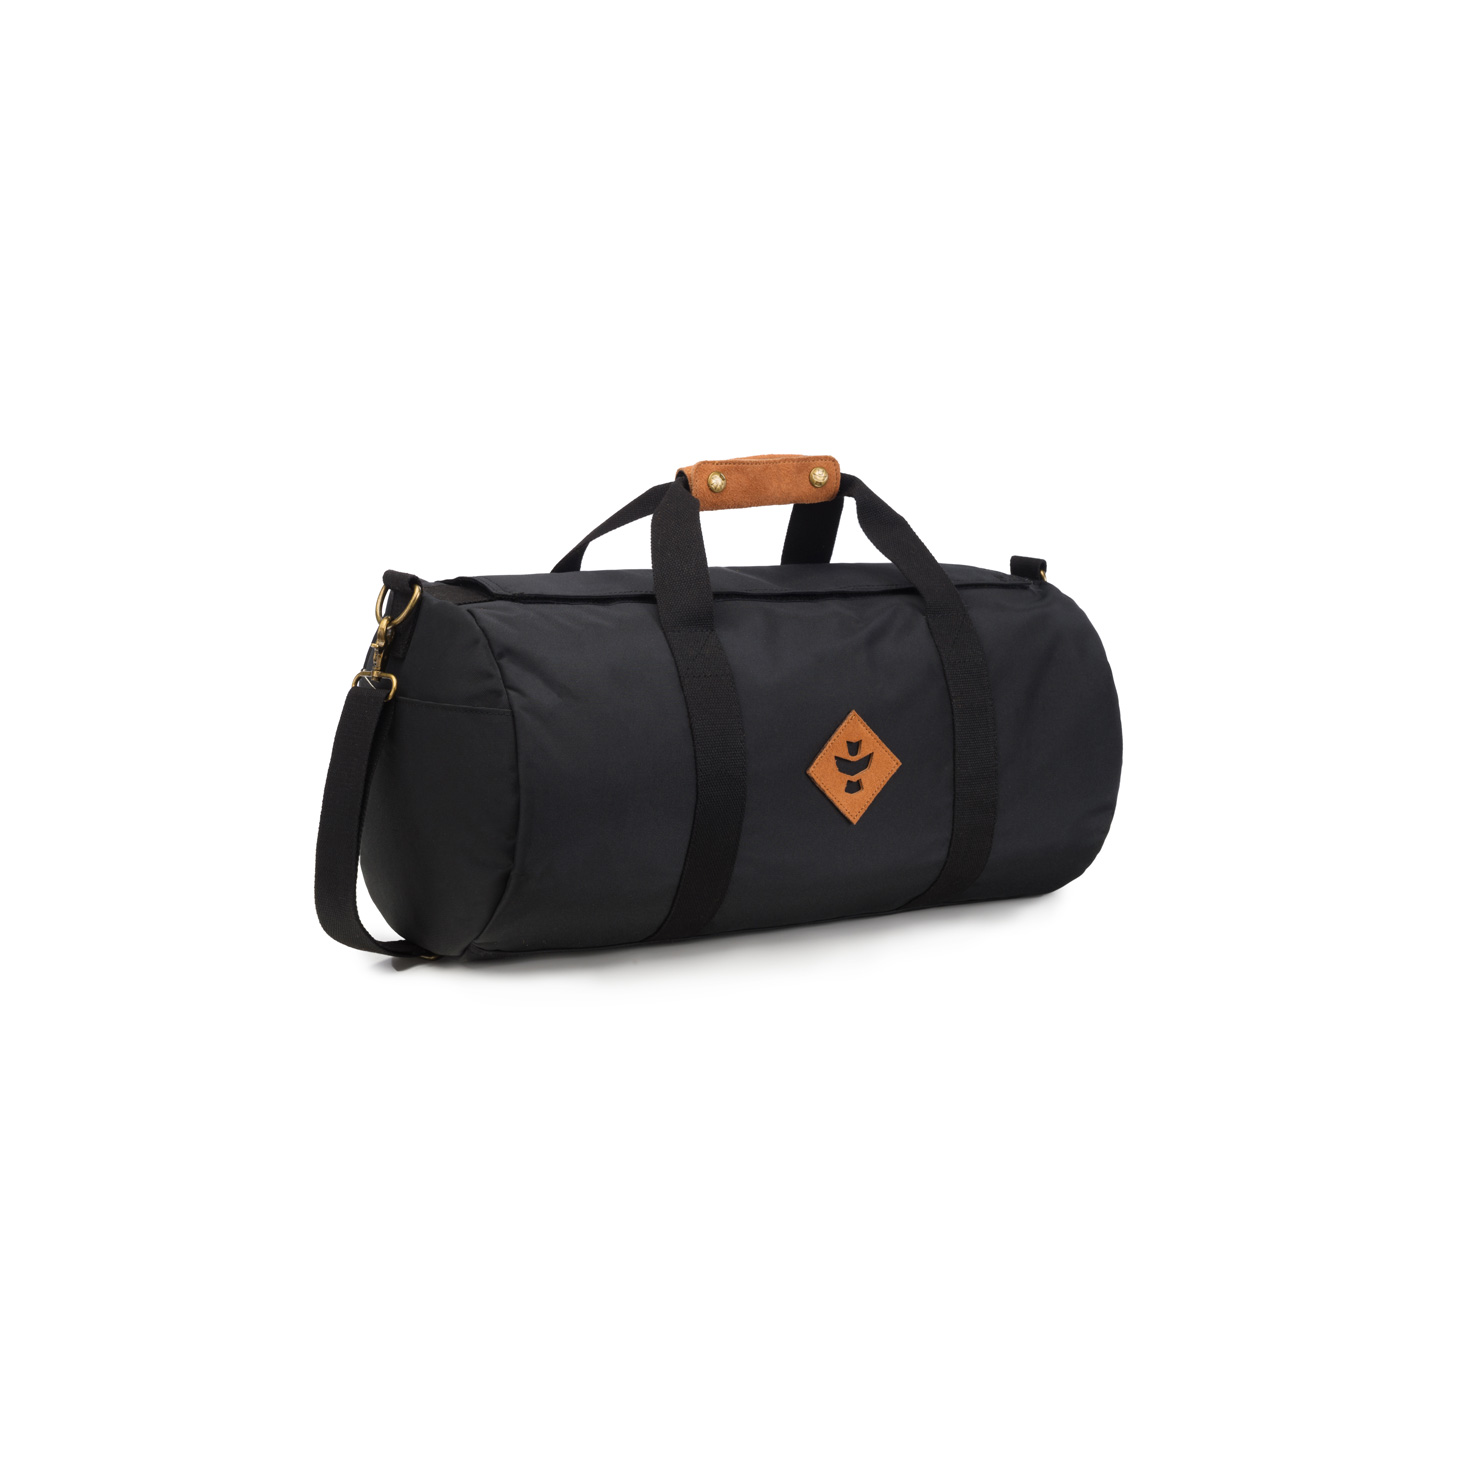 f14d7d40f The Overnighter - Odour Absorbing and Water Proof Duffle Travel Bags